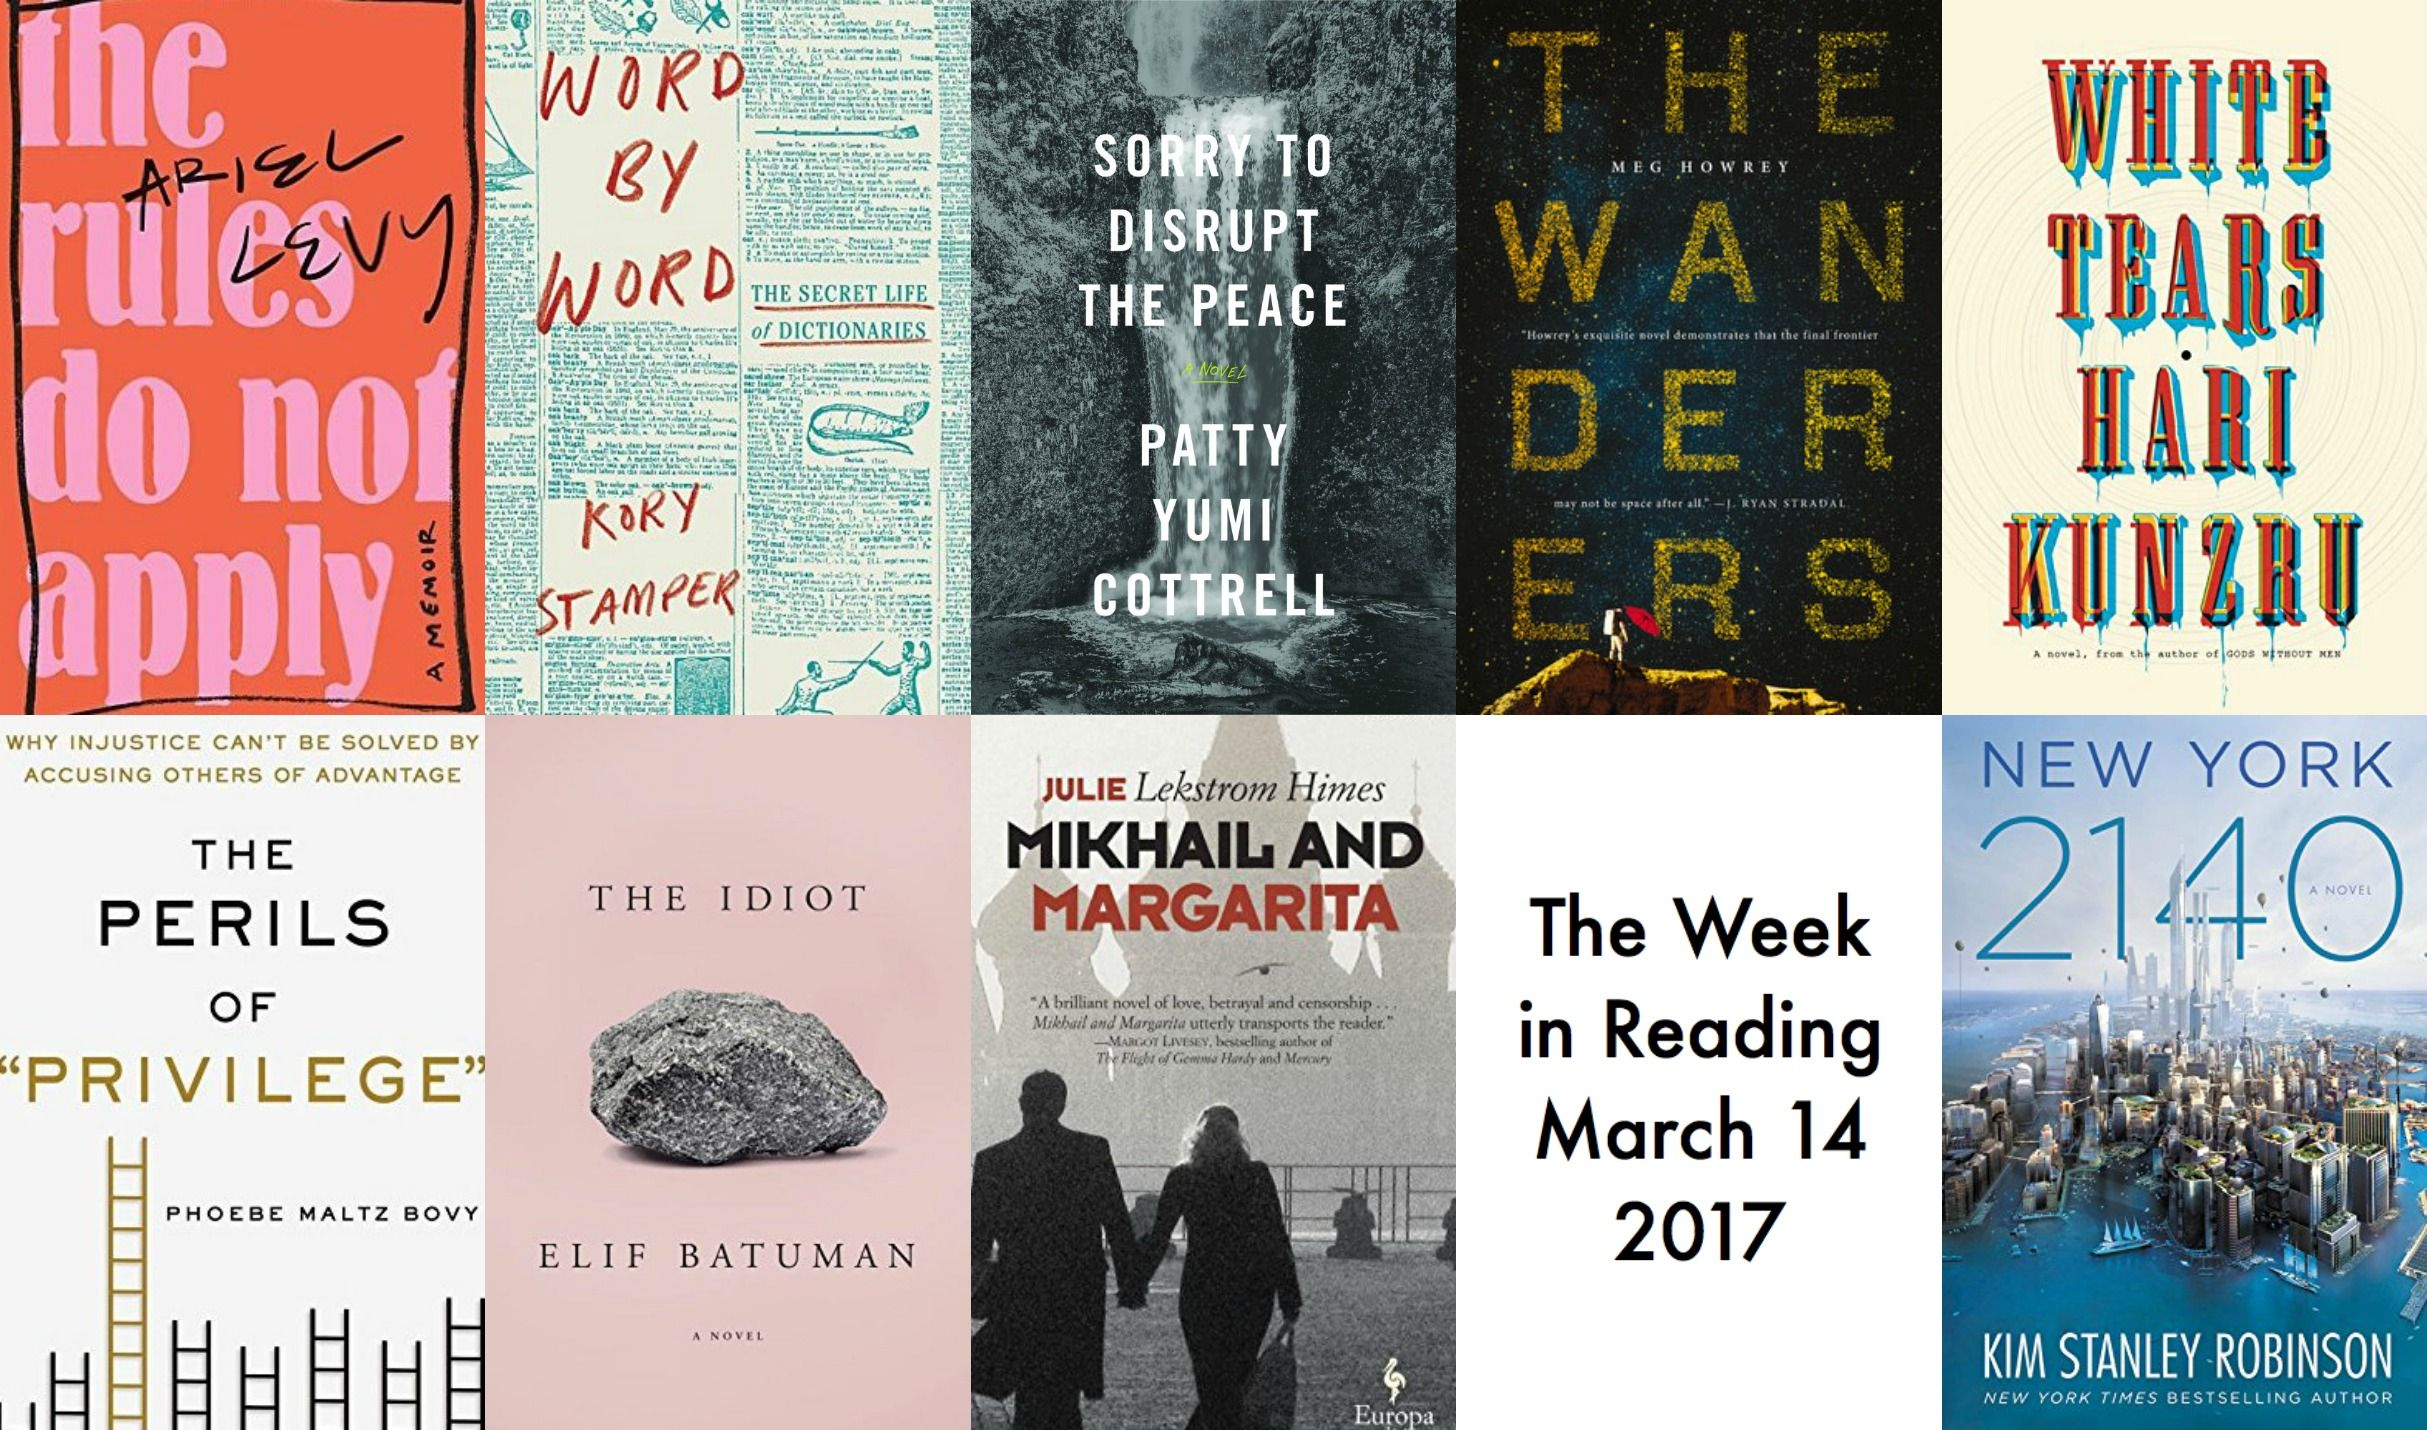 The Week in Reading: The Best New Book Releases for March 14, 2017